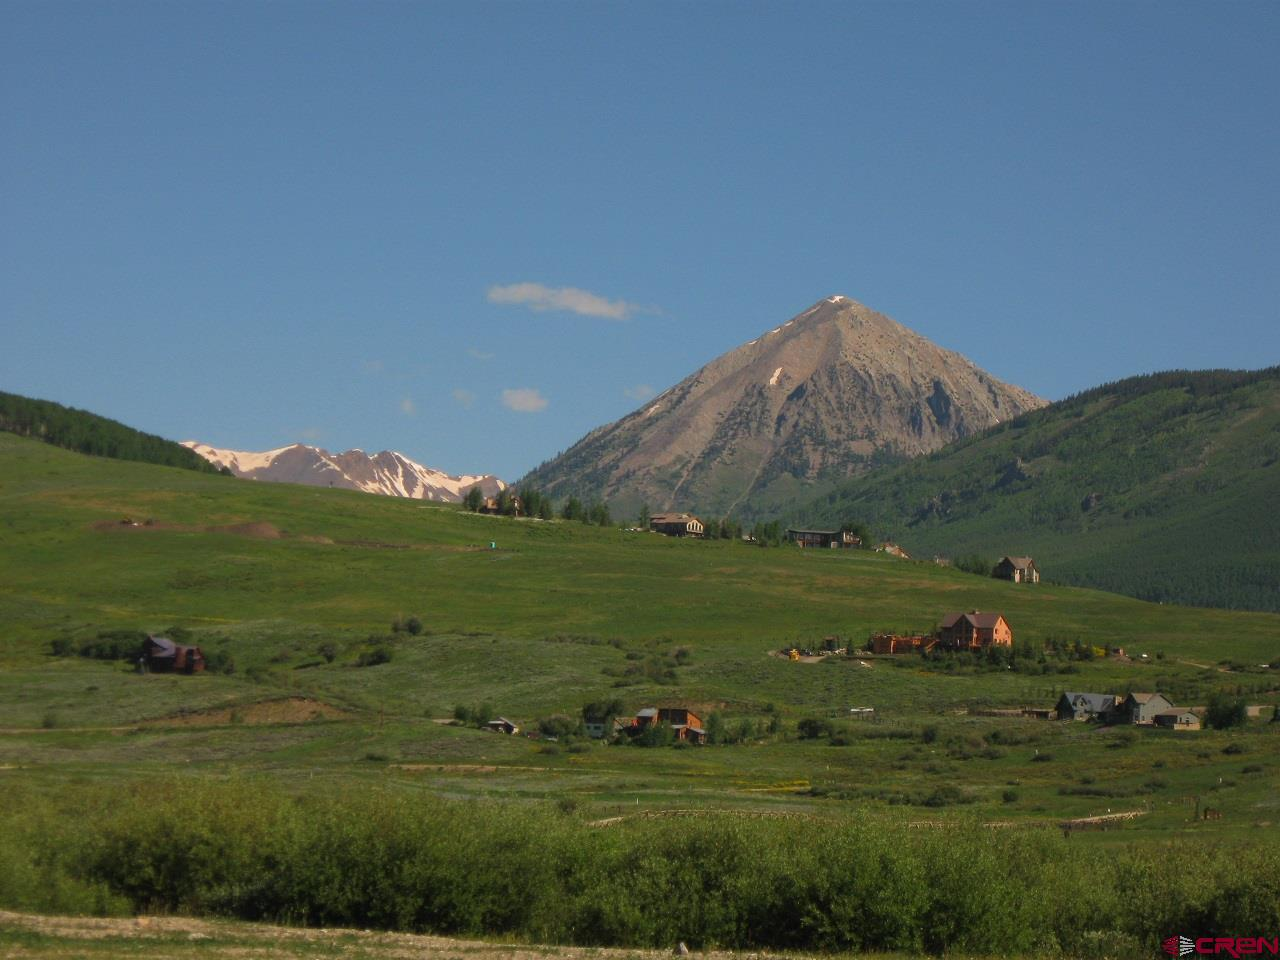 MLS# 757733 - 8 - 341 Mccormick Ranch Road, Crested Butte, CO 81224